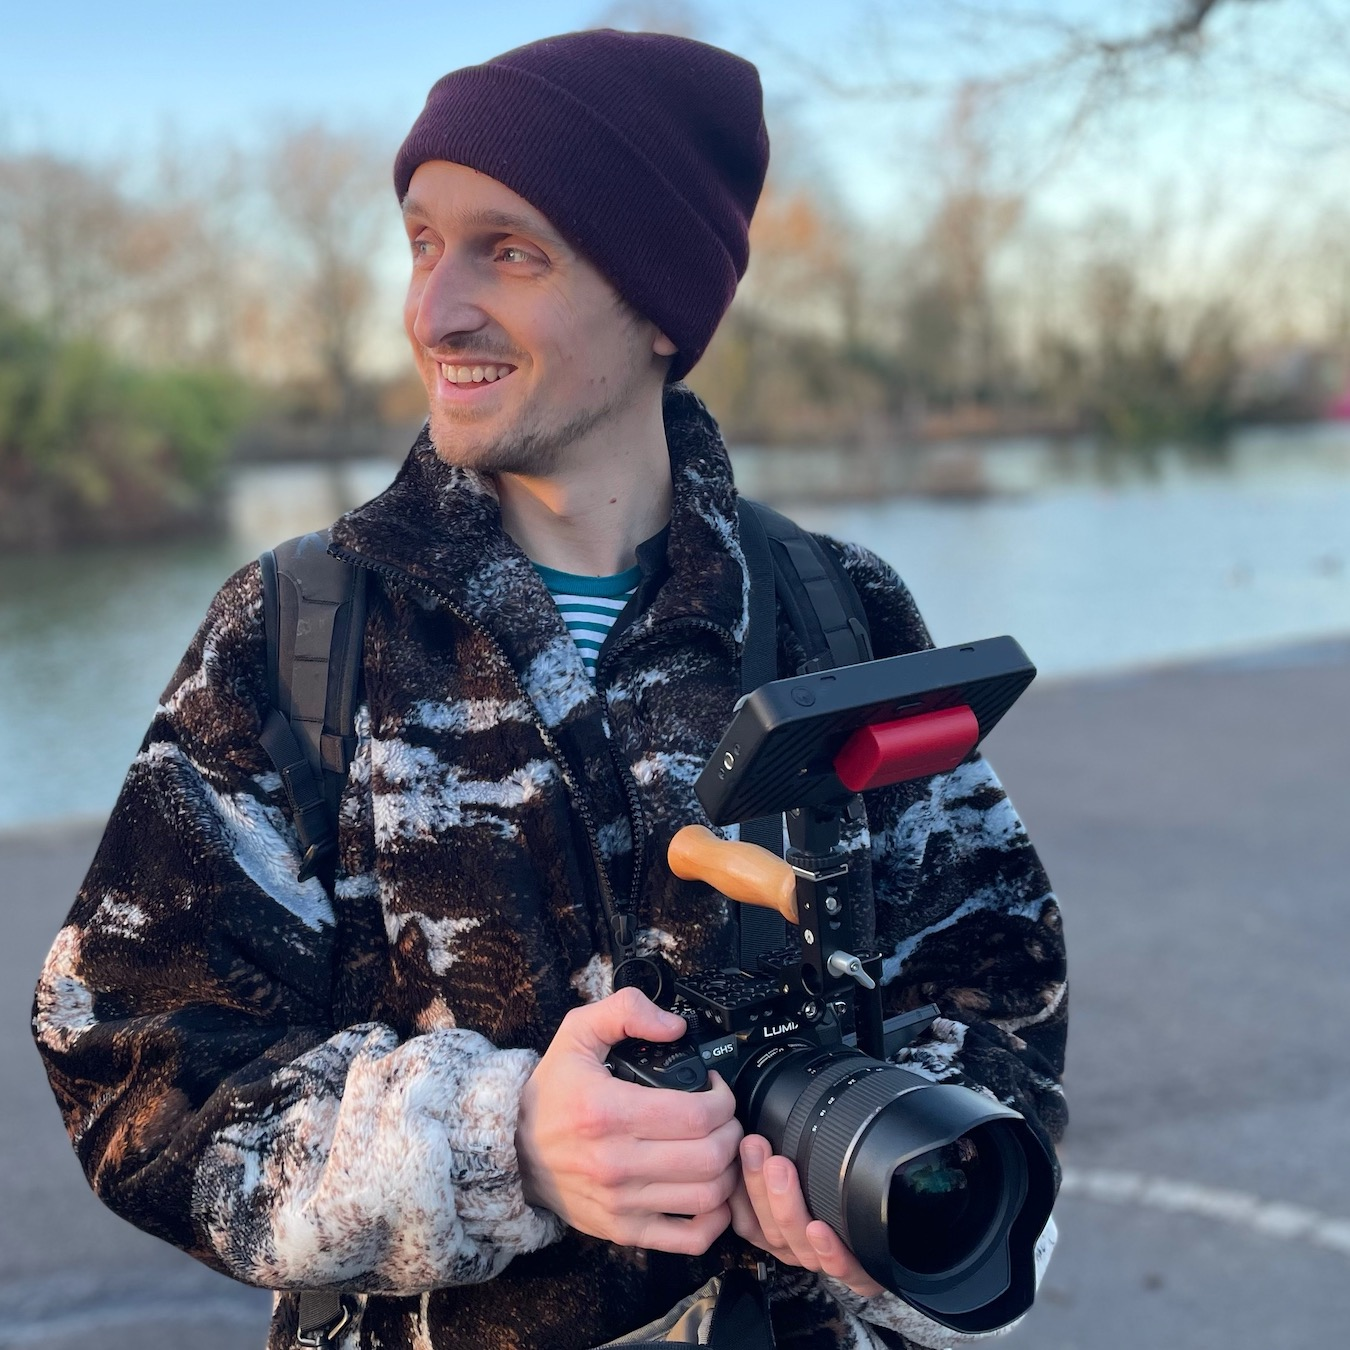 Chris Hart with GH5 Rig